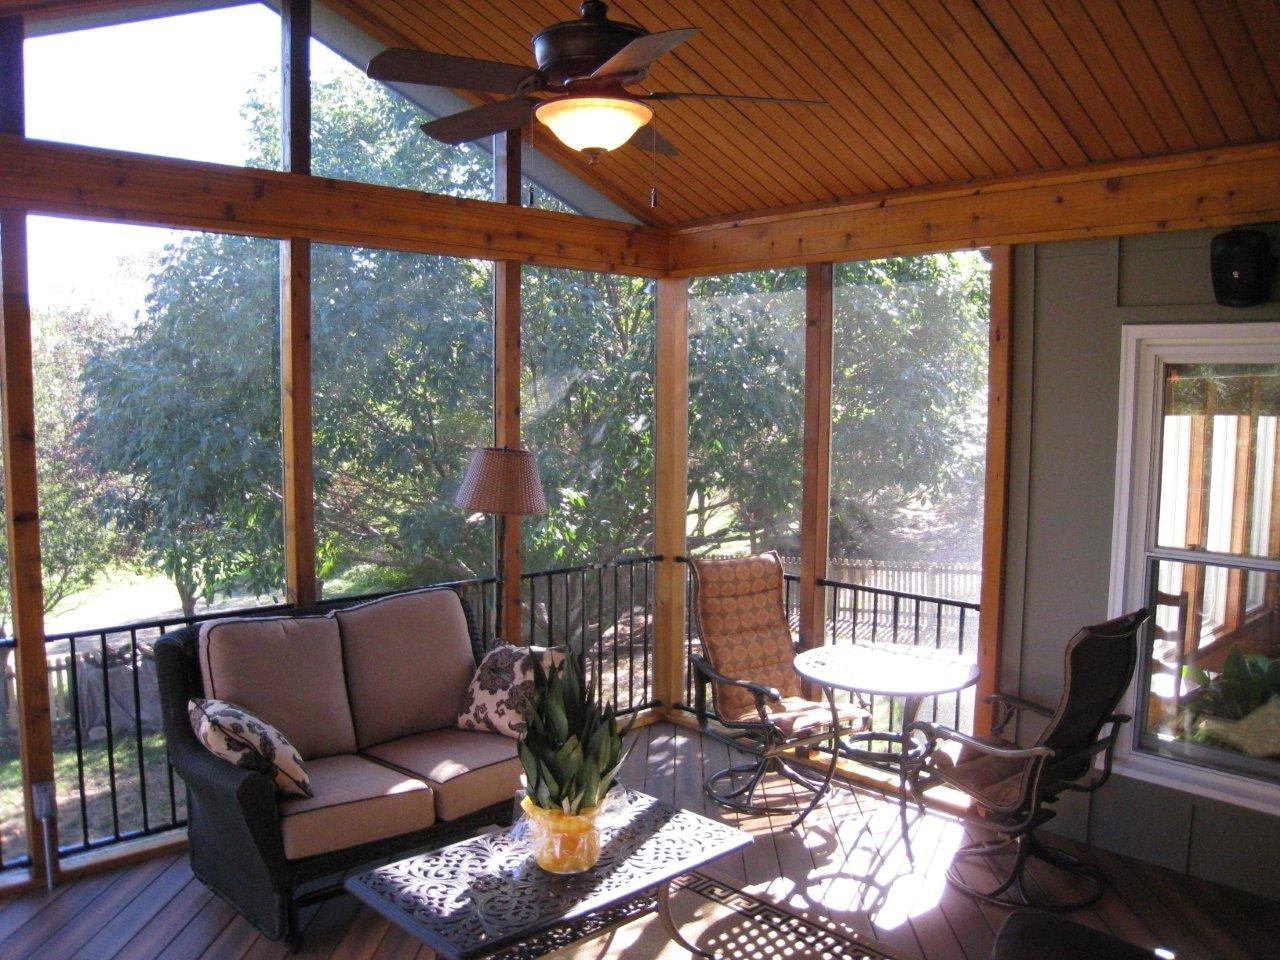 Outdoor Ceiling Fans For Porch Within Newest Low Profile Outdoor Ceiling Fans With Light In Farmhouse With (View 18 of 20)